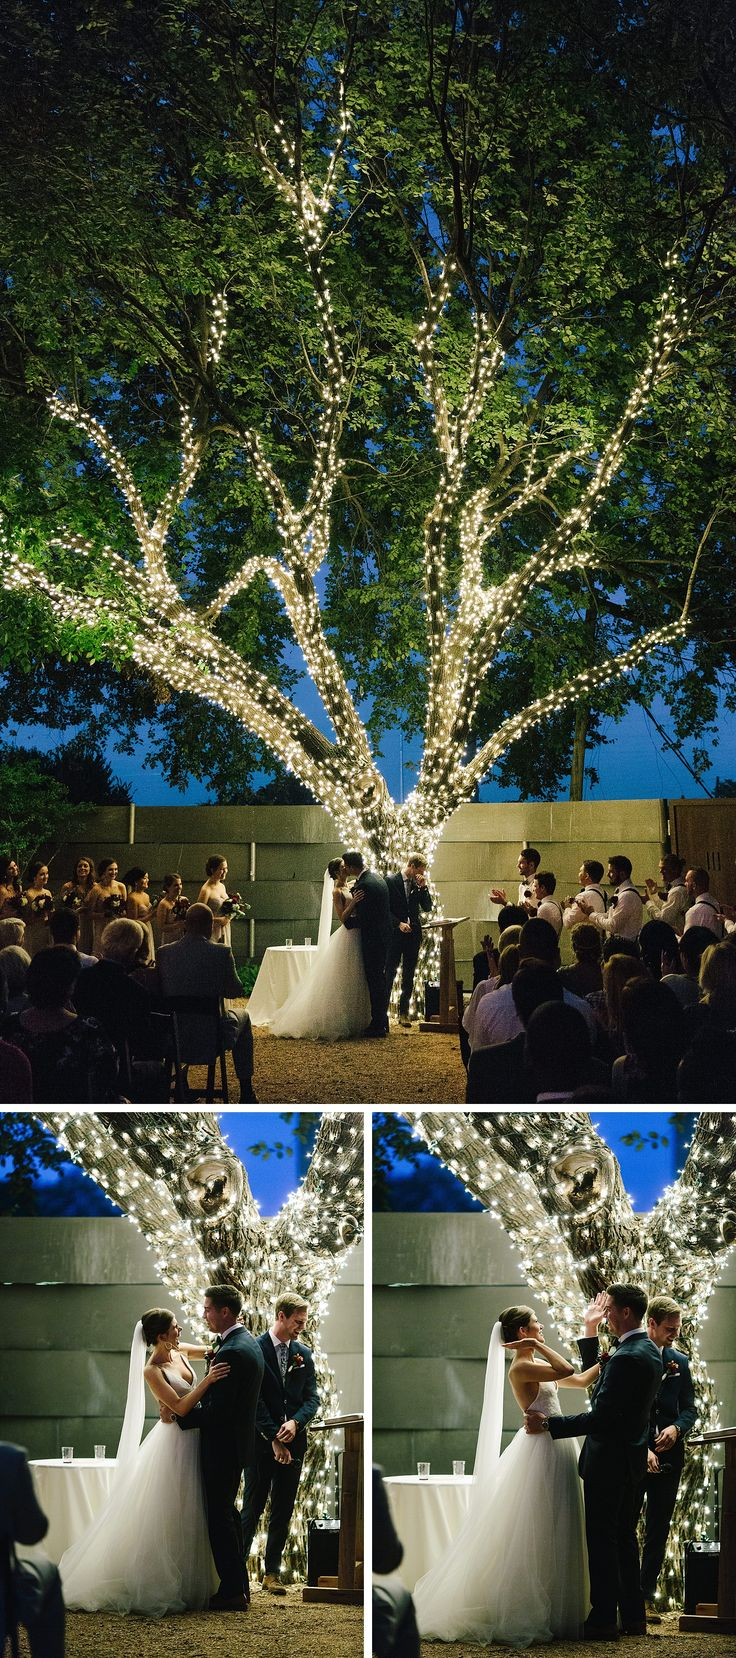 outdoor wedding venues dfw texas%0A Fort Worth Wedding Venue   Artspace       outdoorwedding  love  bride   groom